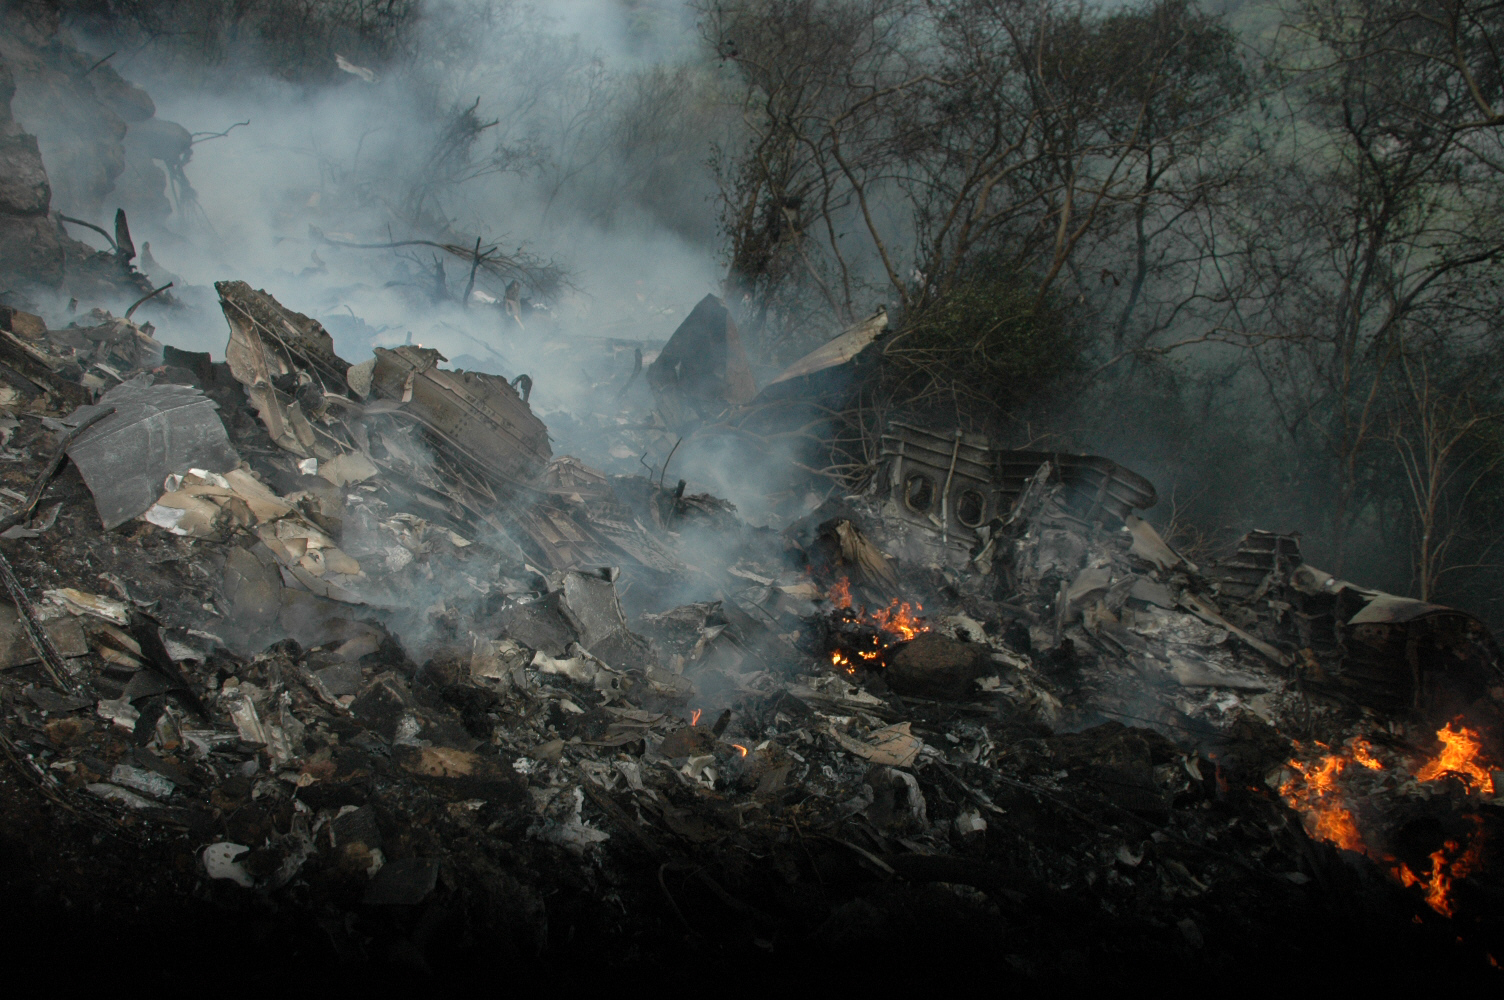 Wreckage of the crashed plane. PHOTO: QAZI USMAN